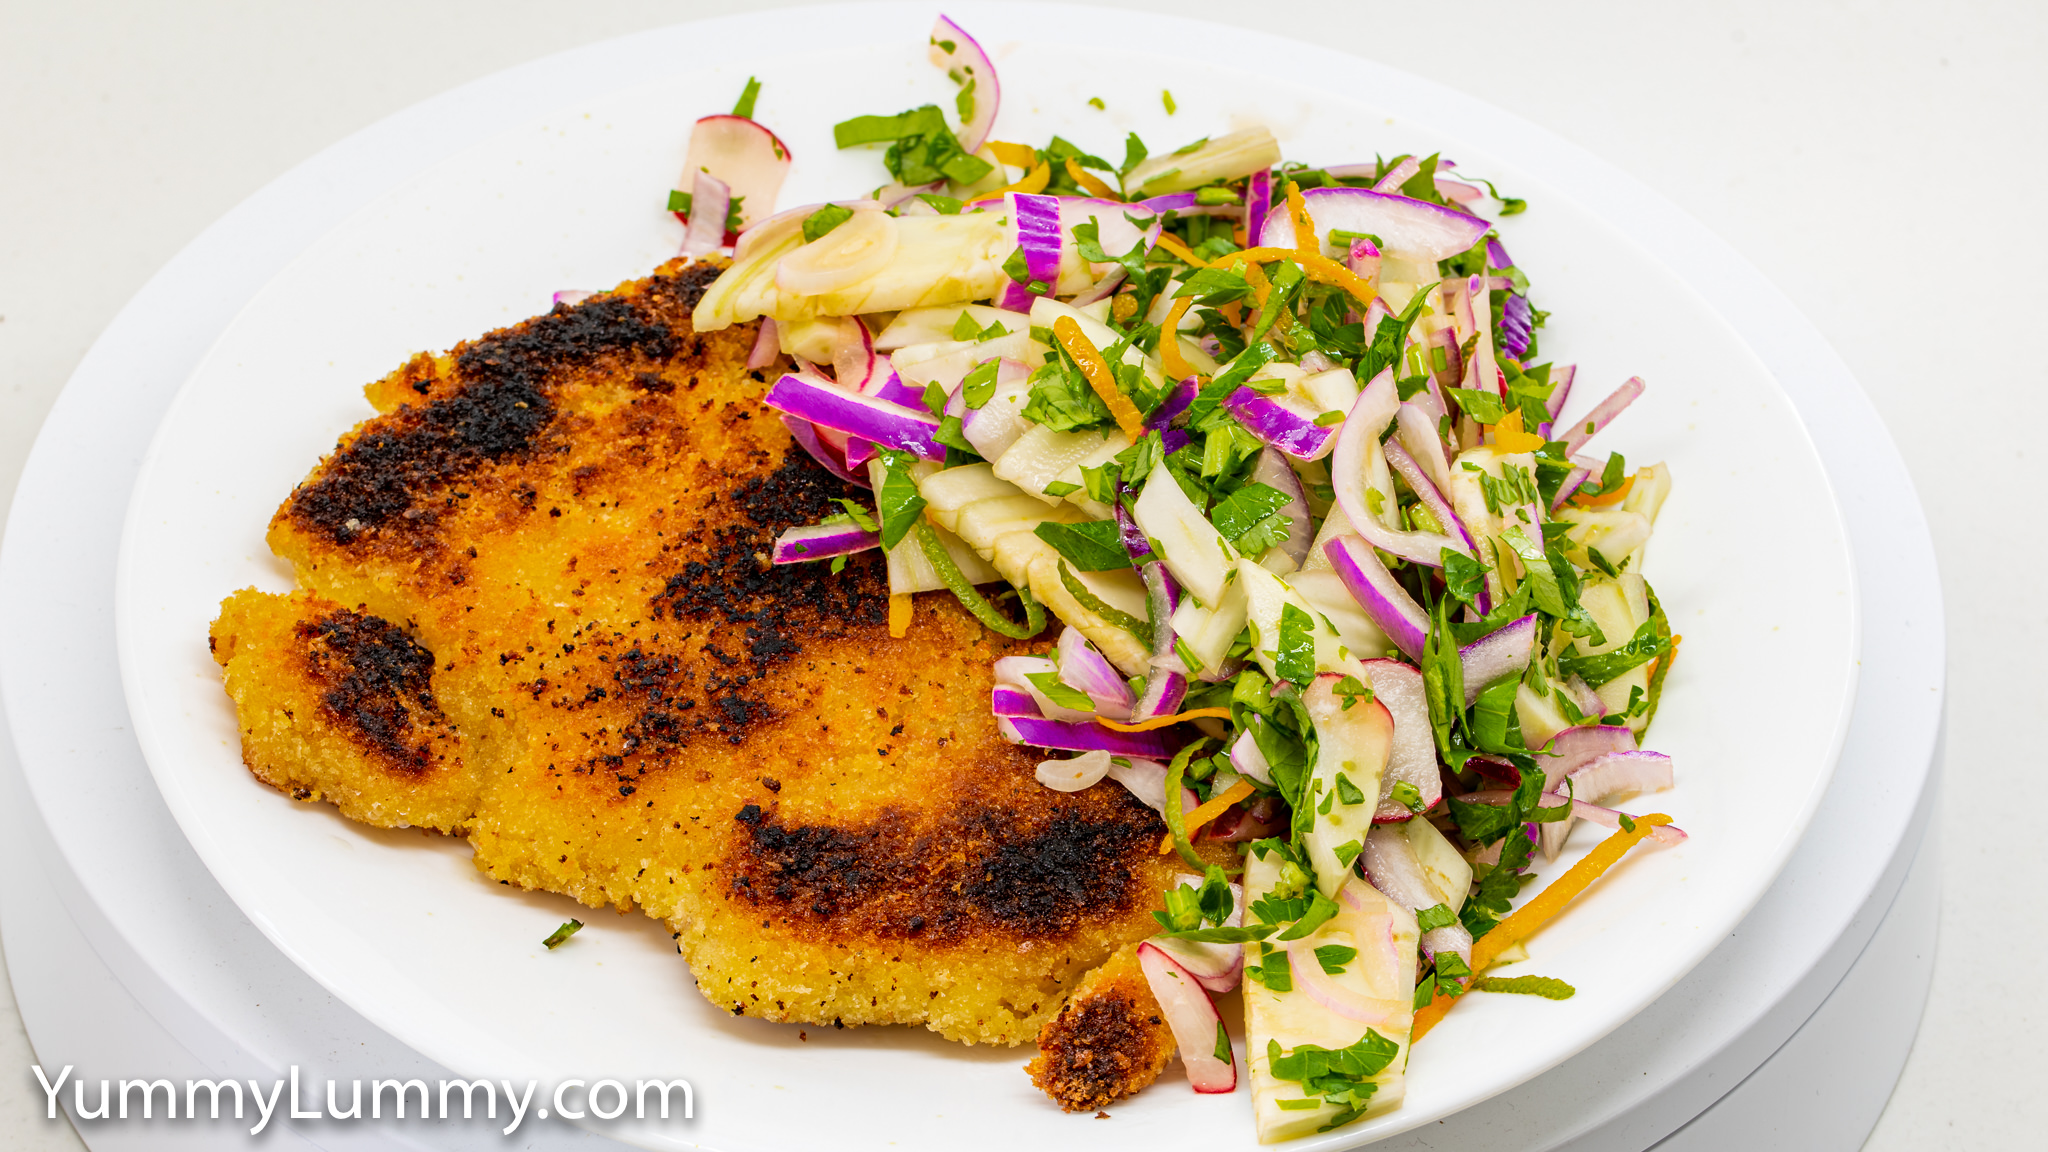 Chicken thigh schnitzel with pickled fennel, red onion, and radish with chopped parsley.. Gary Lum.